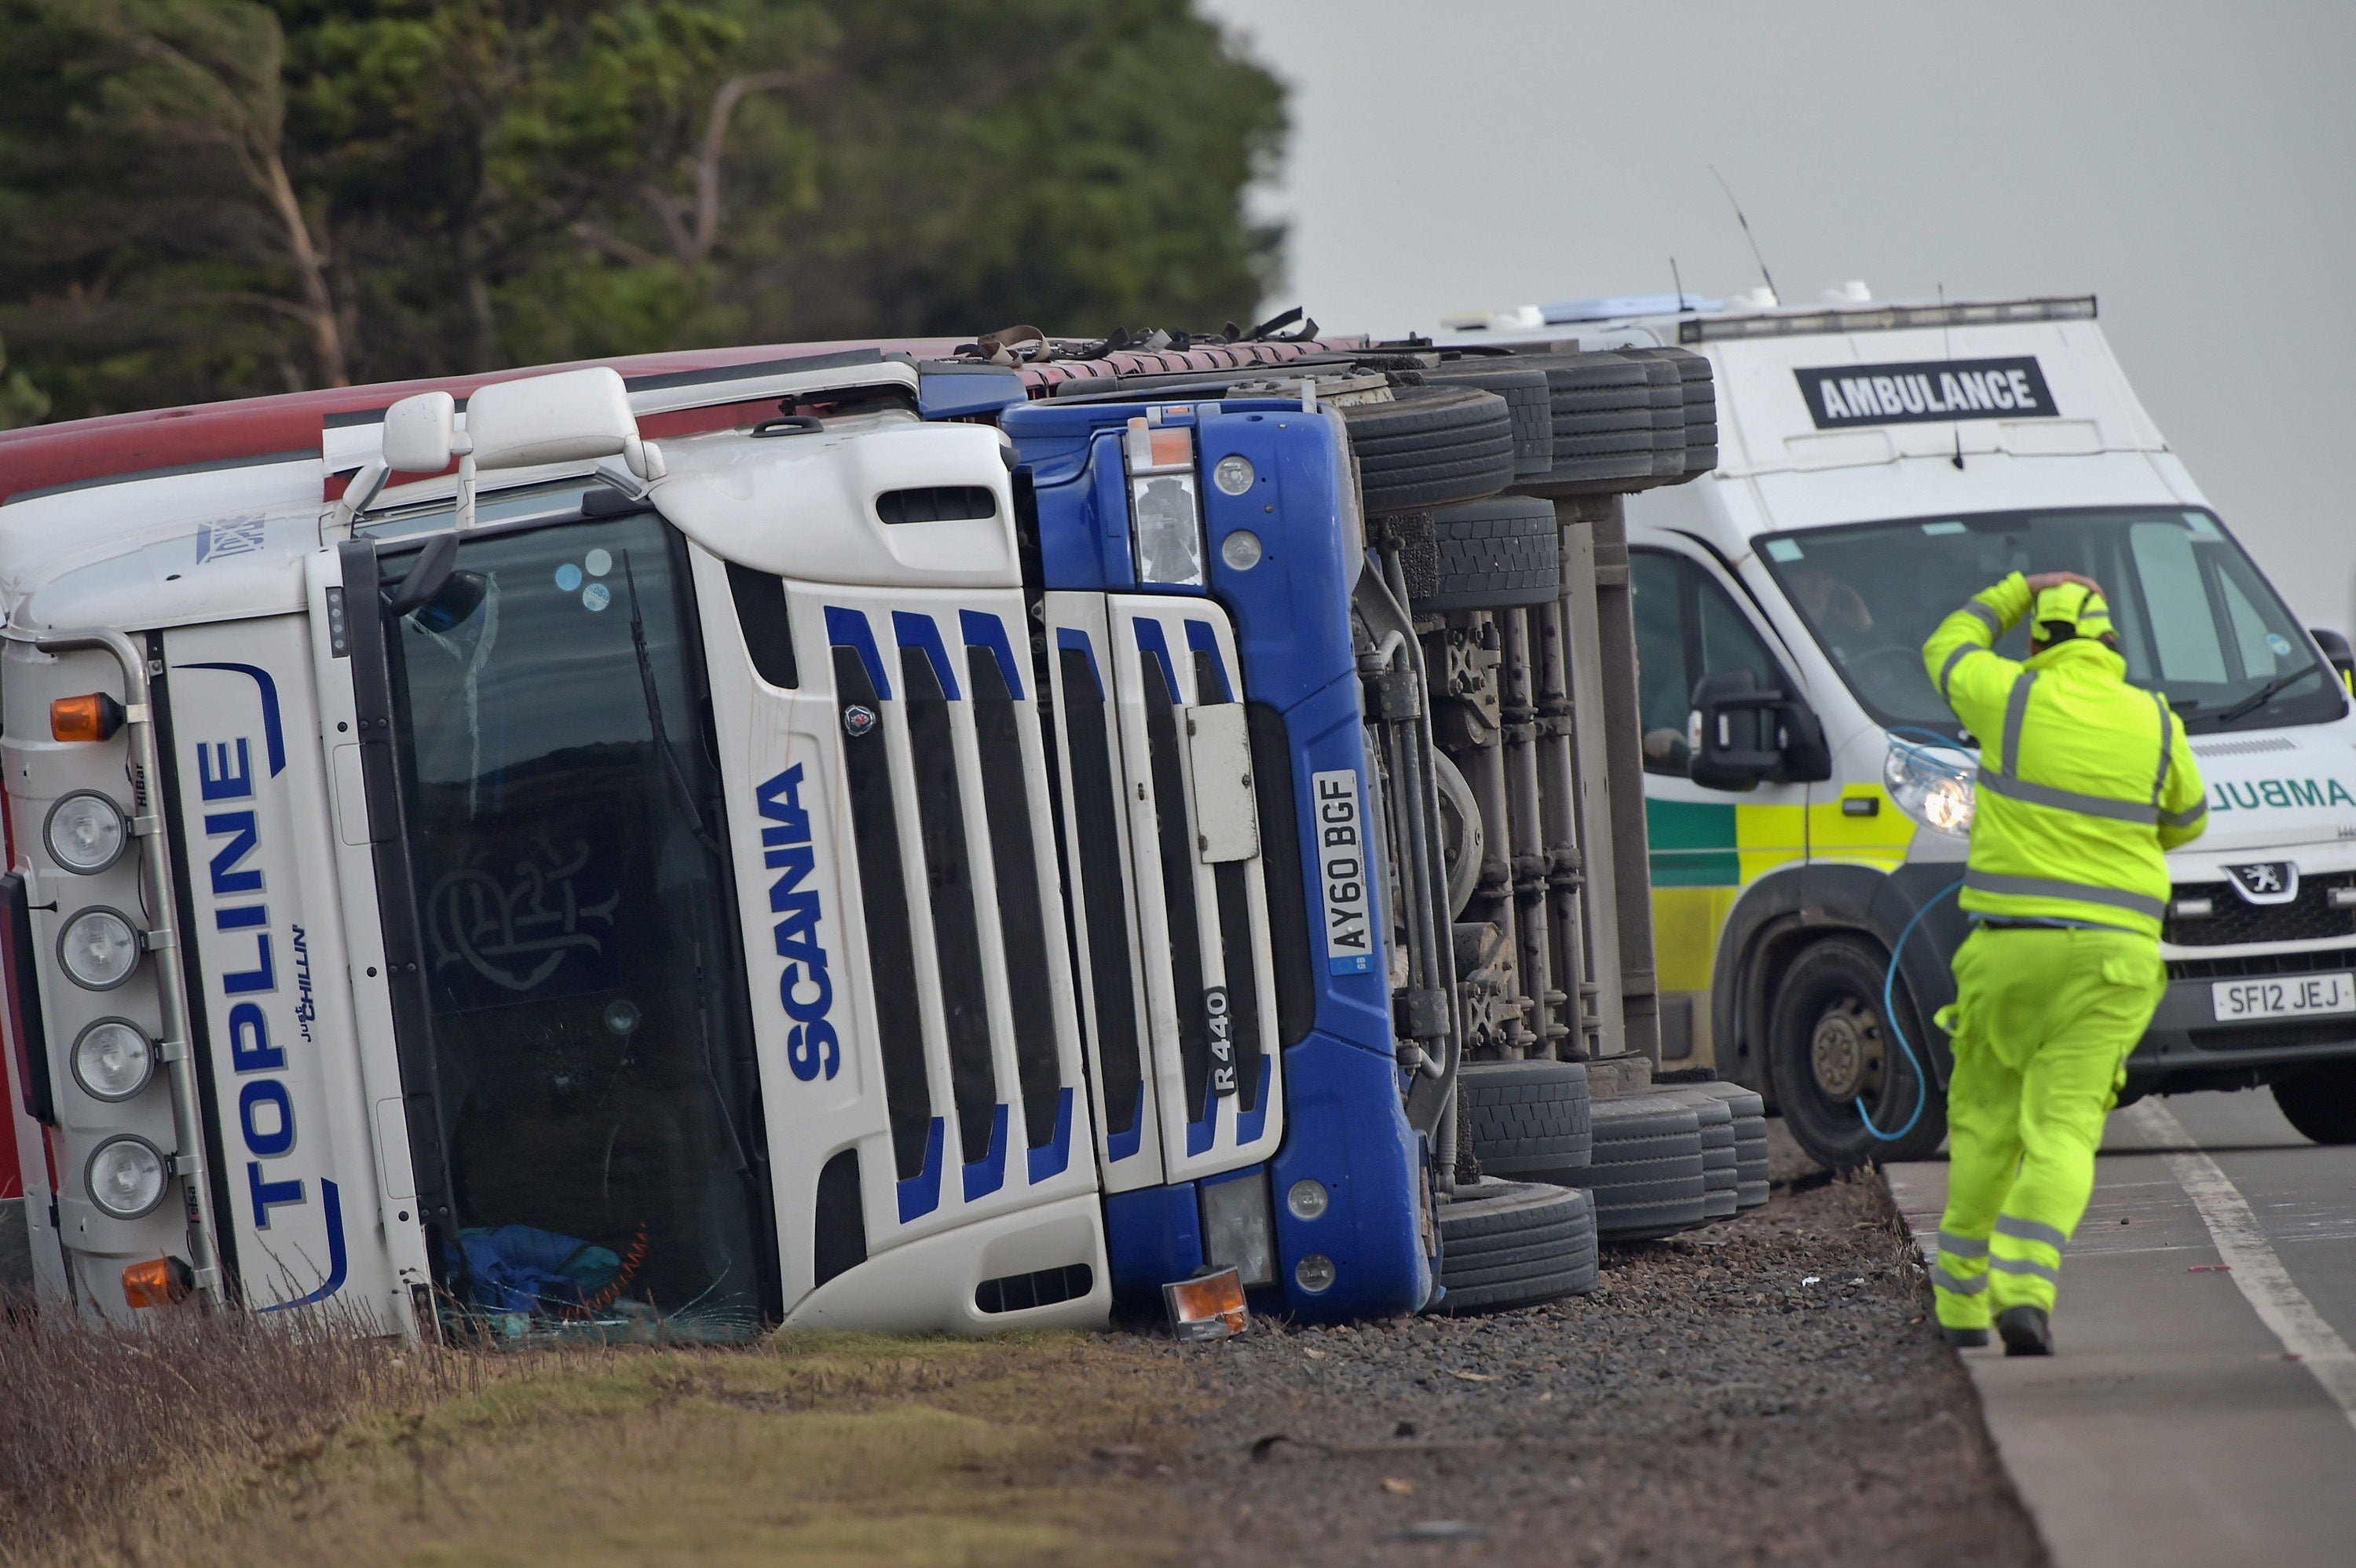 Strong winds cause closure of key road linking Scotland and England